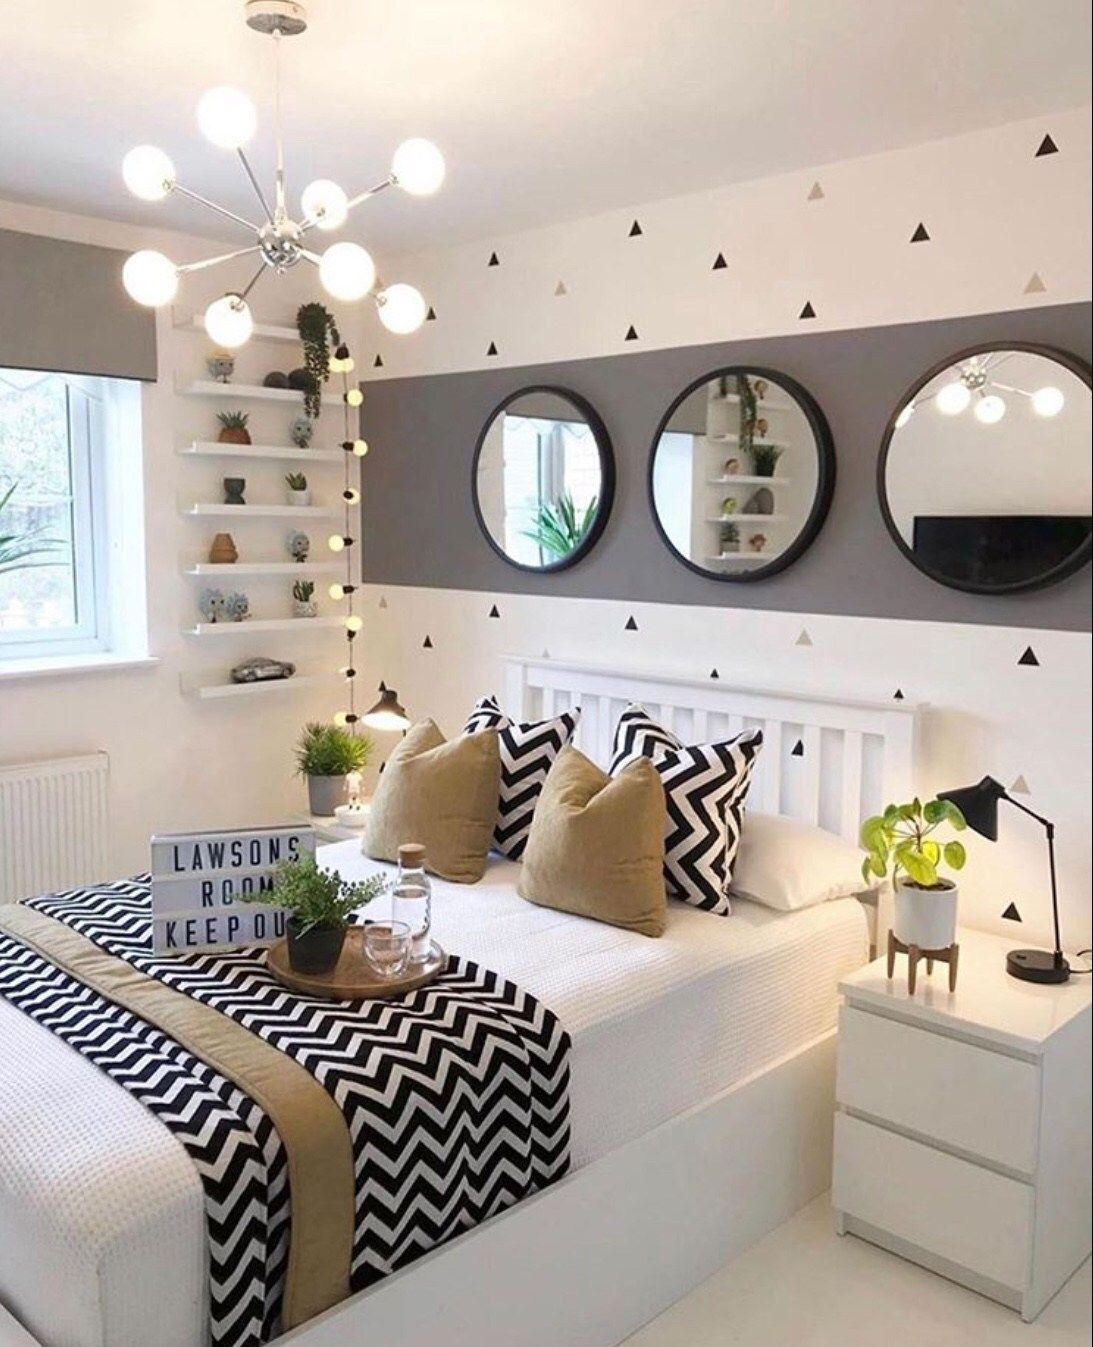 10 Ways To Decorate The Empty Space Over Your Bed - The Wonder